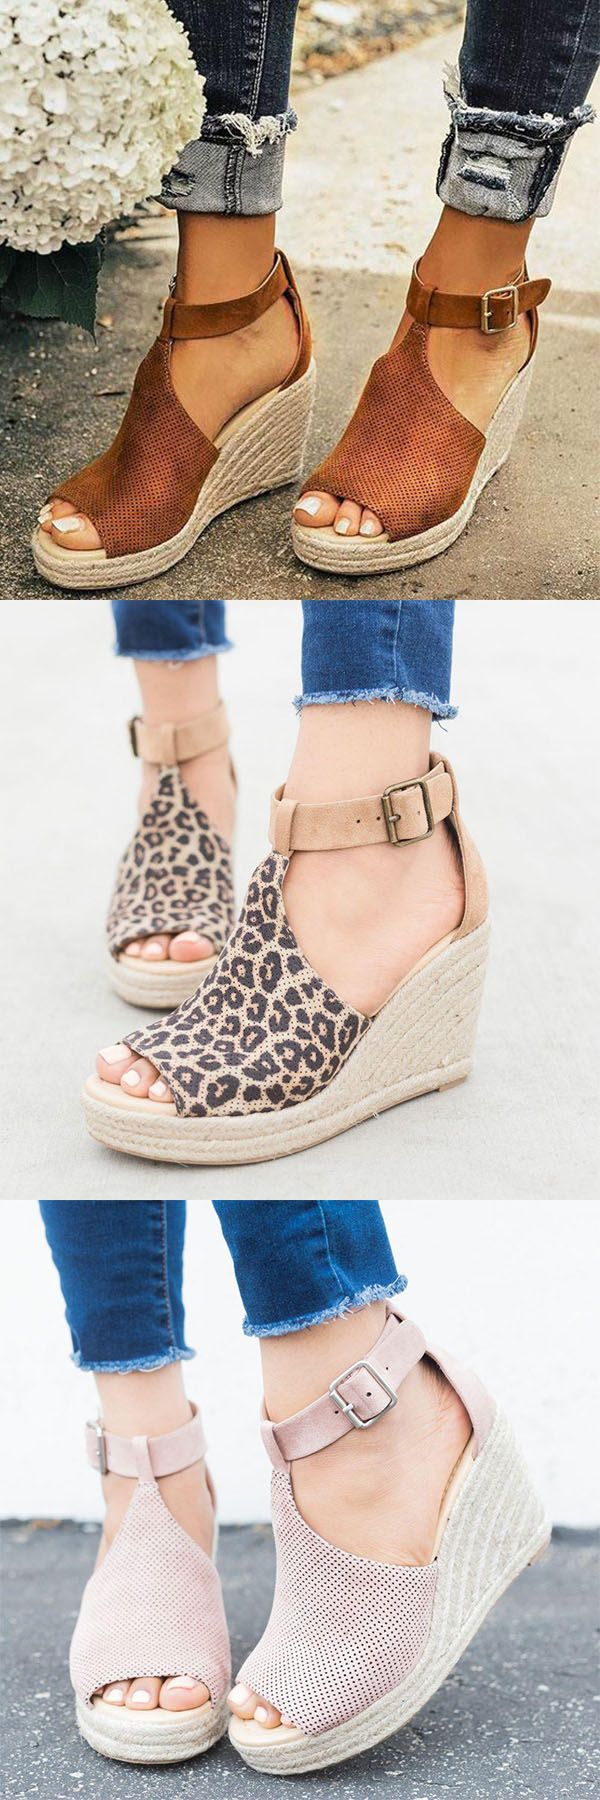 Hot Sale!Women Chic Espadrille Wedges Adjustable Buckle Sandals -   25 mexican style clothes